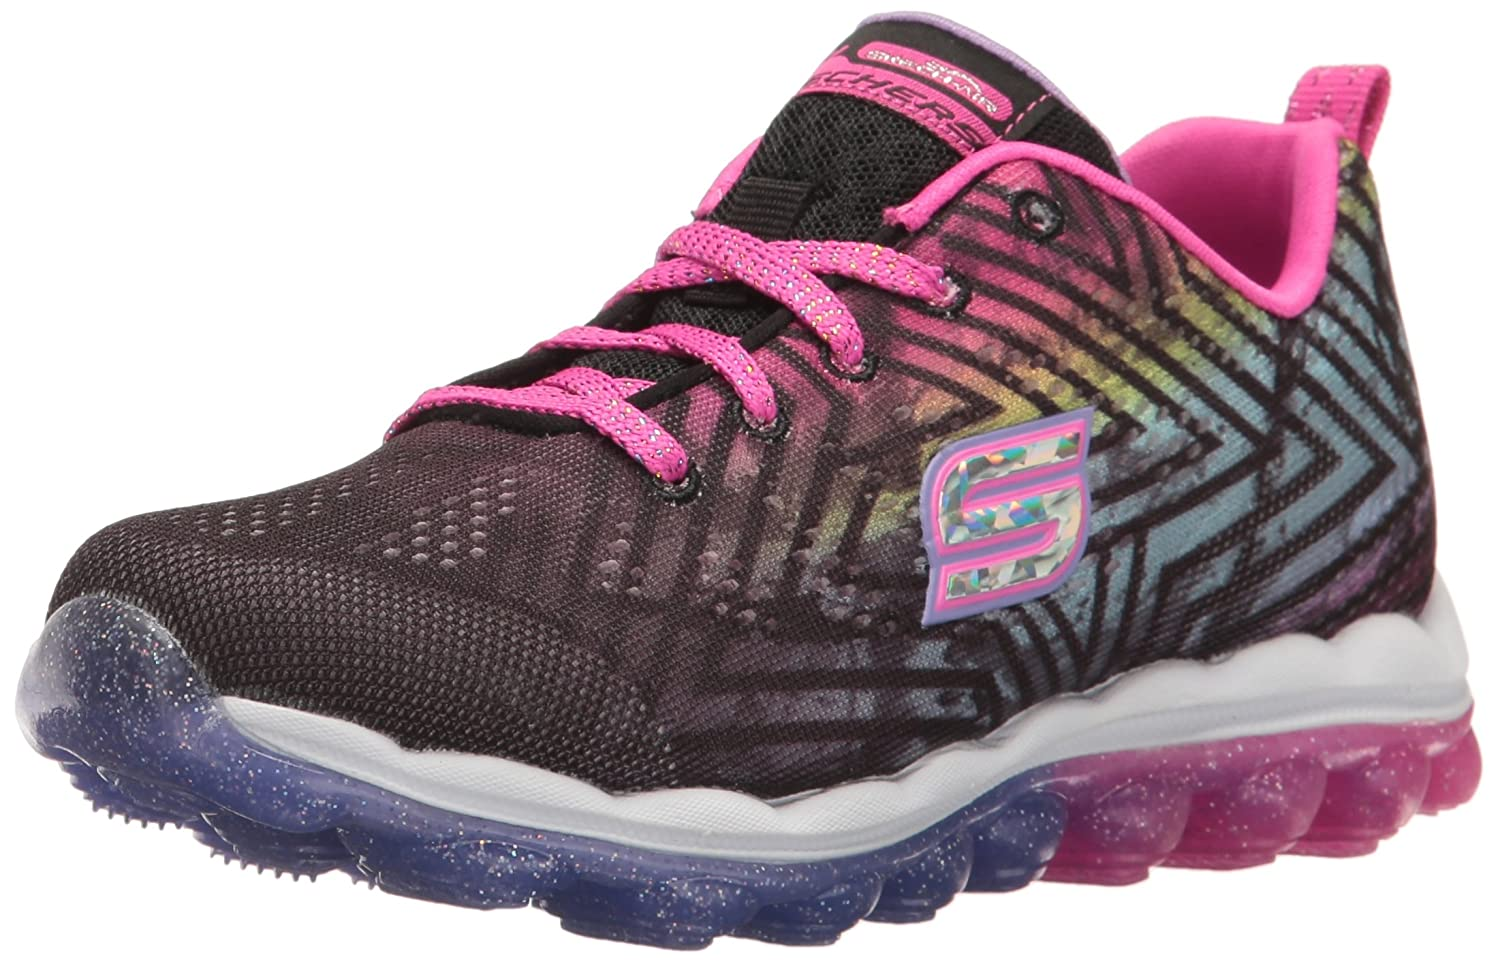 Skechers Girl's, Skech Air Jumparound Lace up Sneakers Skechers Girl' s